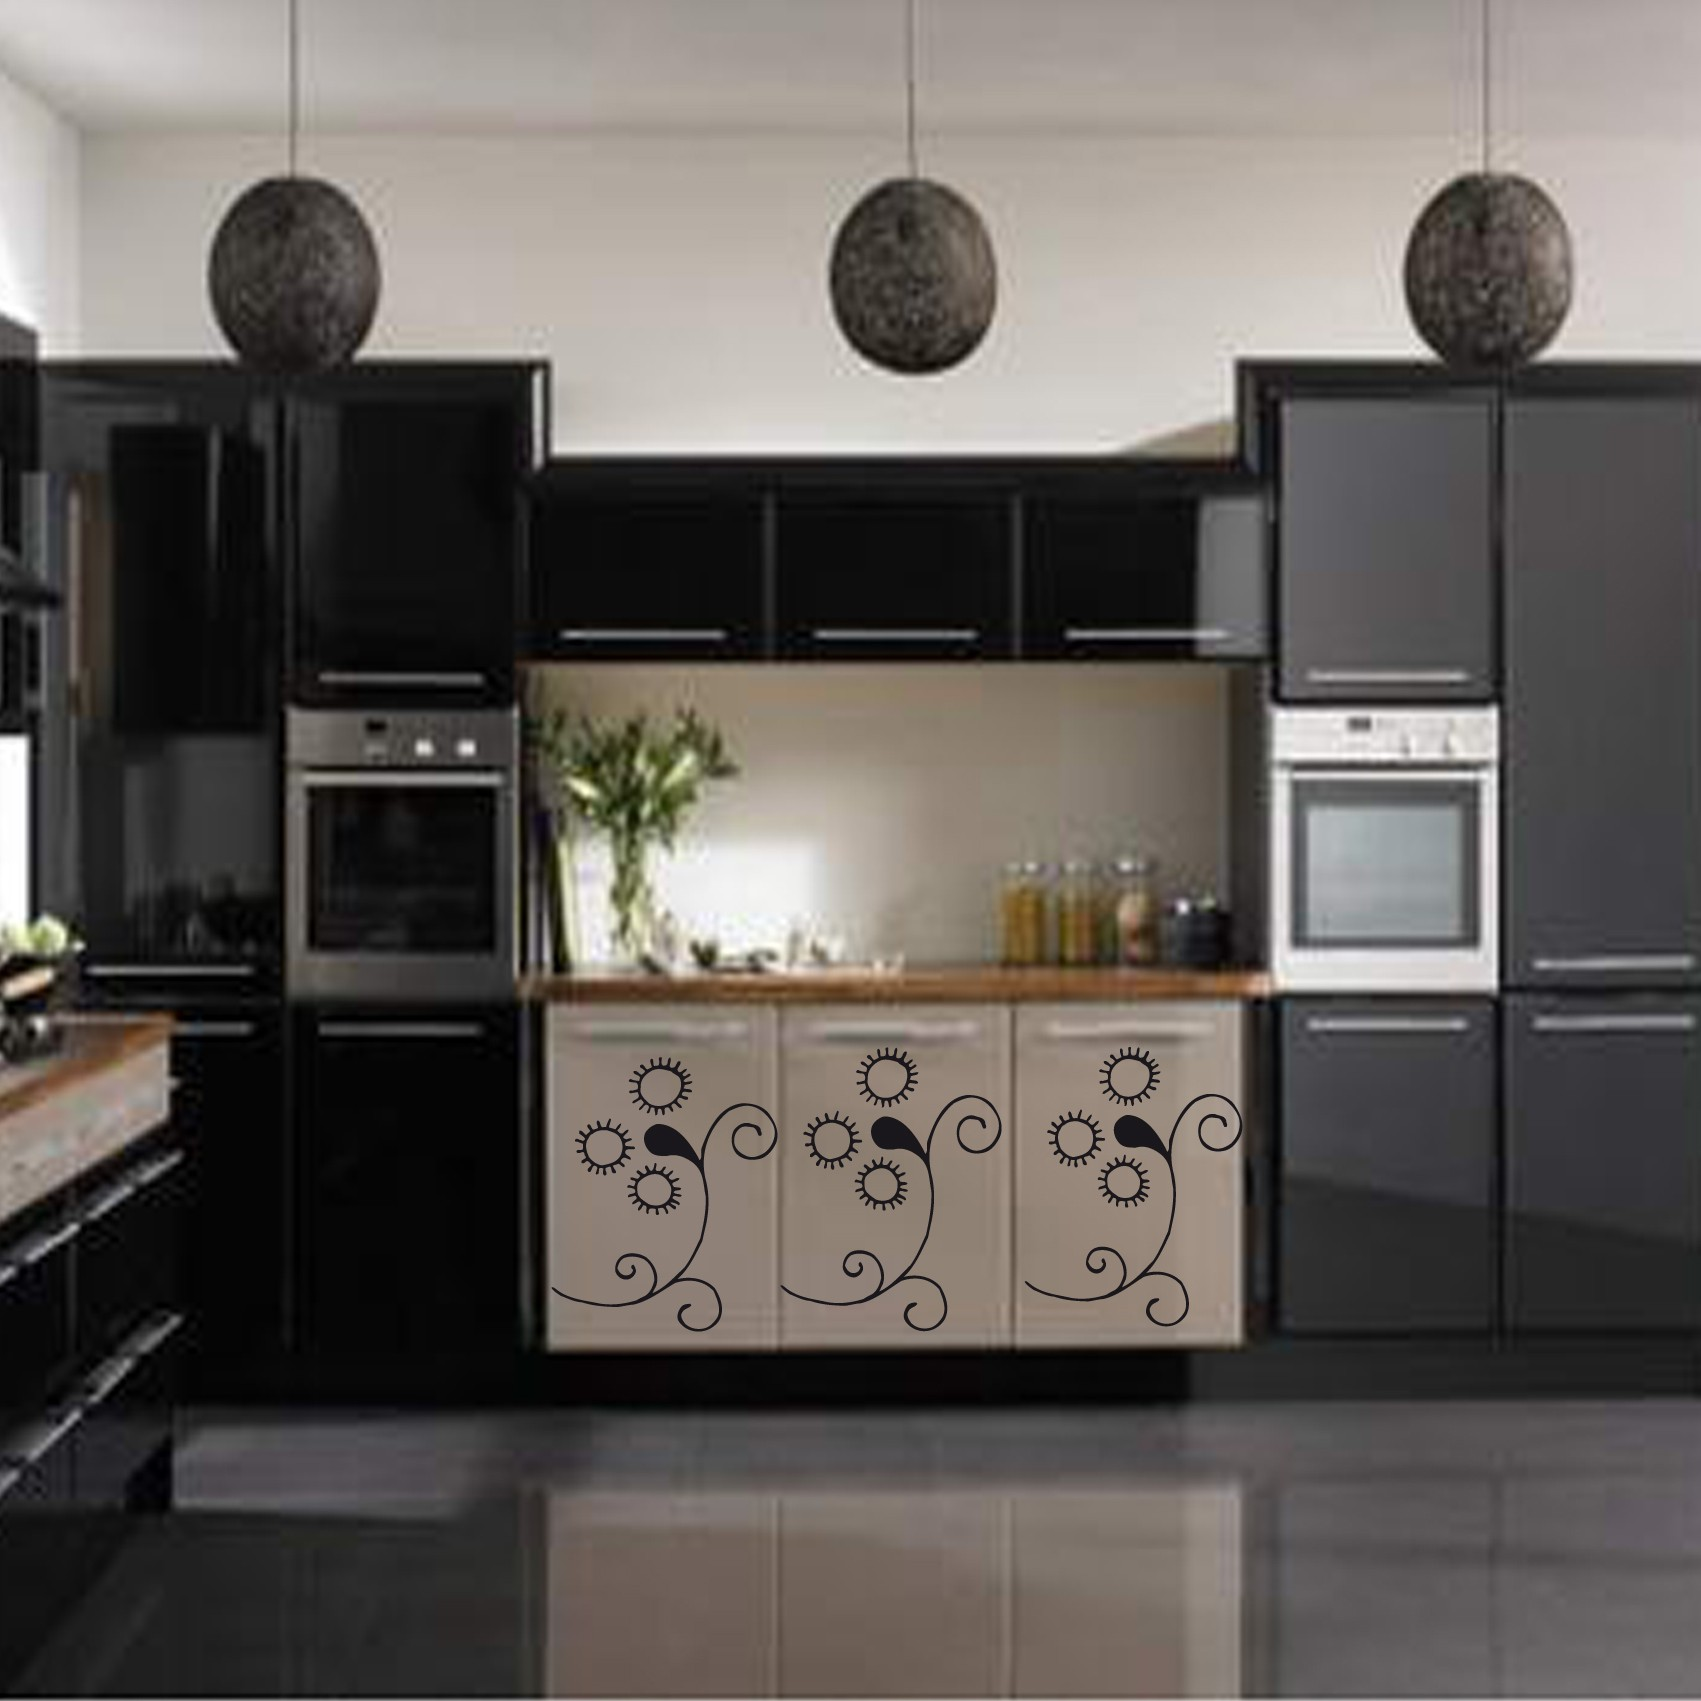 revetement pour meuble de cuisine plinthe meuble de cuisine alu plinthe cuisine inox. Black Bedroom Furniture Sets. Home Design Ideas